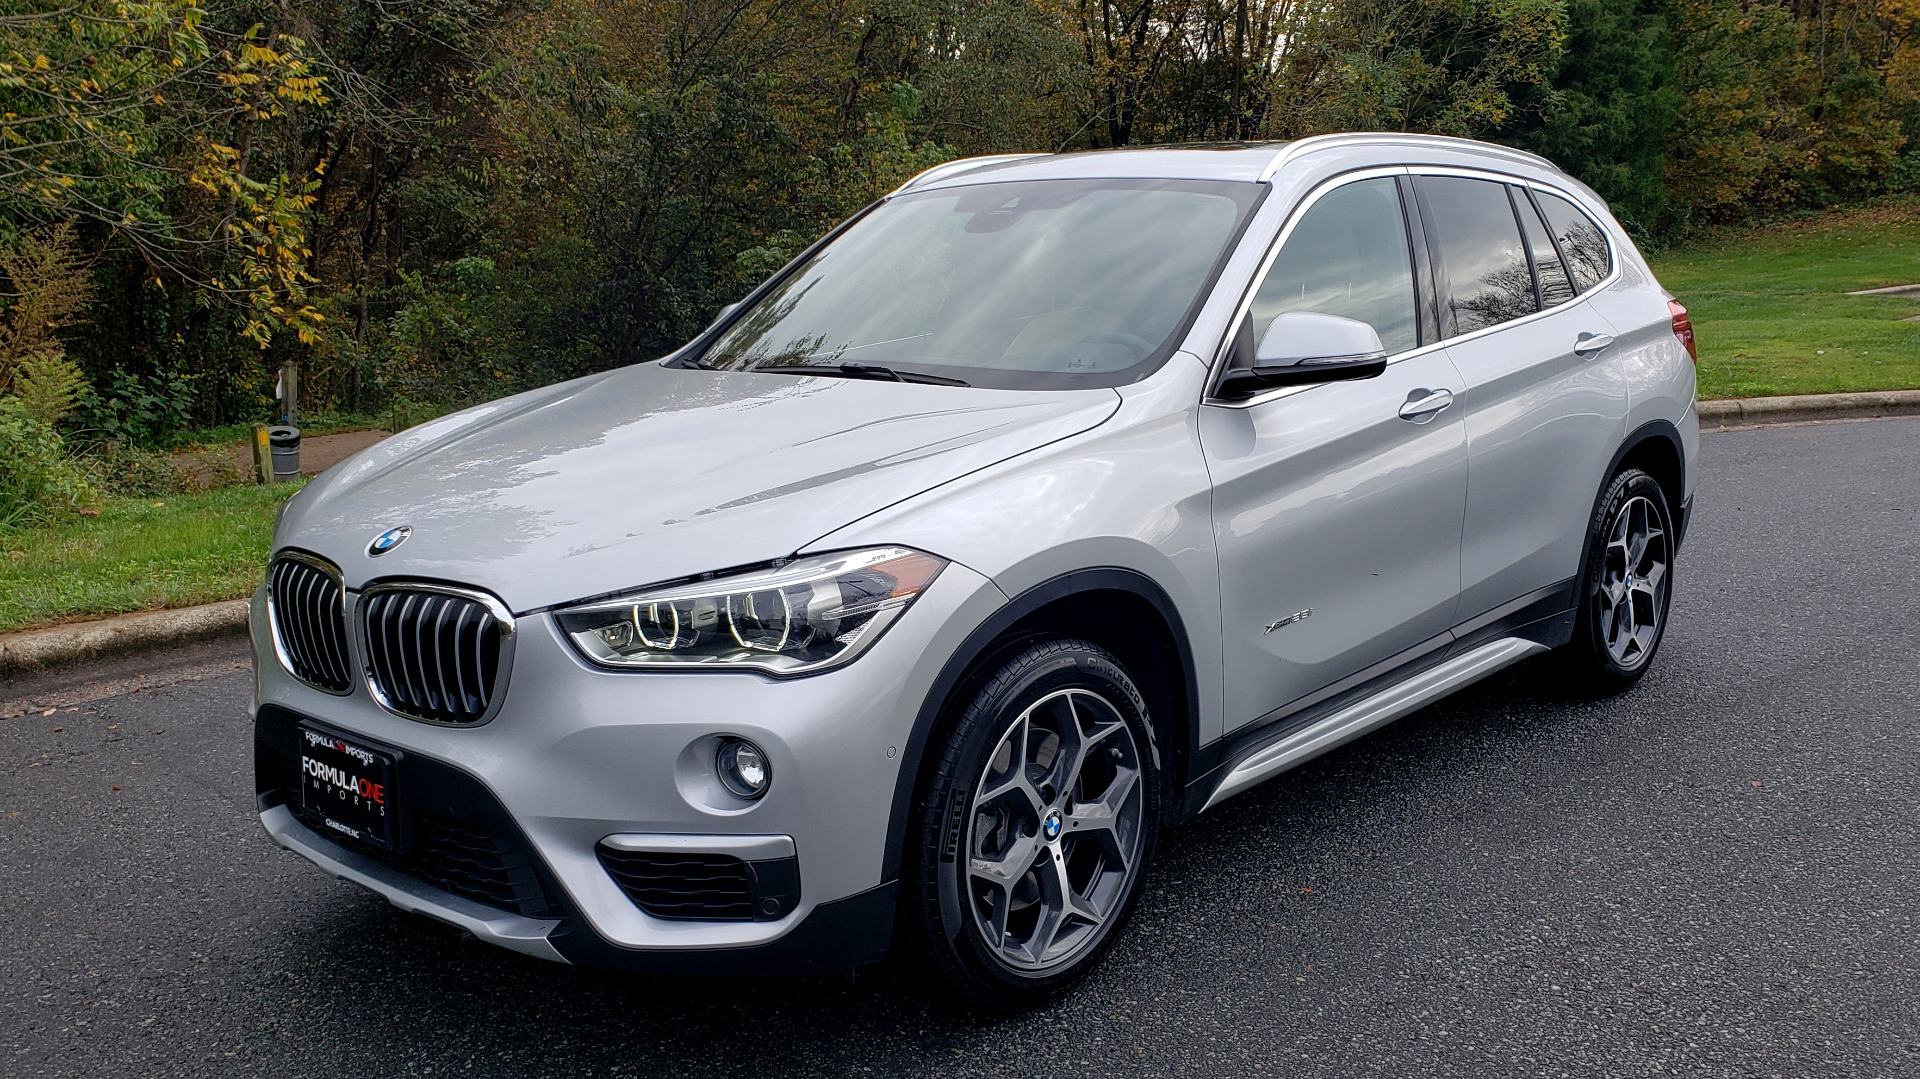 Used 2017 BMW X1 XDRIVE28I / TECH / CLD WTHR / DRVR ASST PLUS / REARVIEW for sale Sold at Formula Imports in Charlotte NC 28227 1